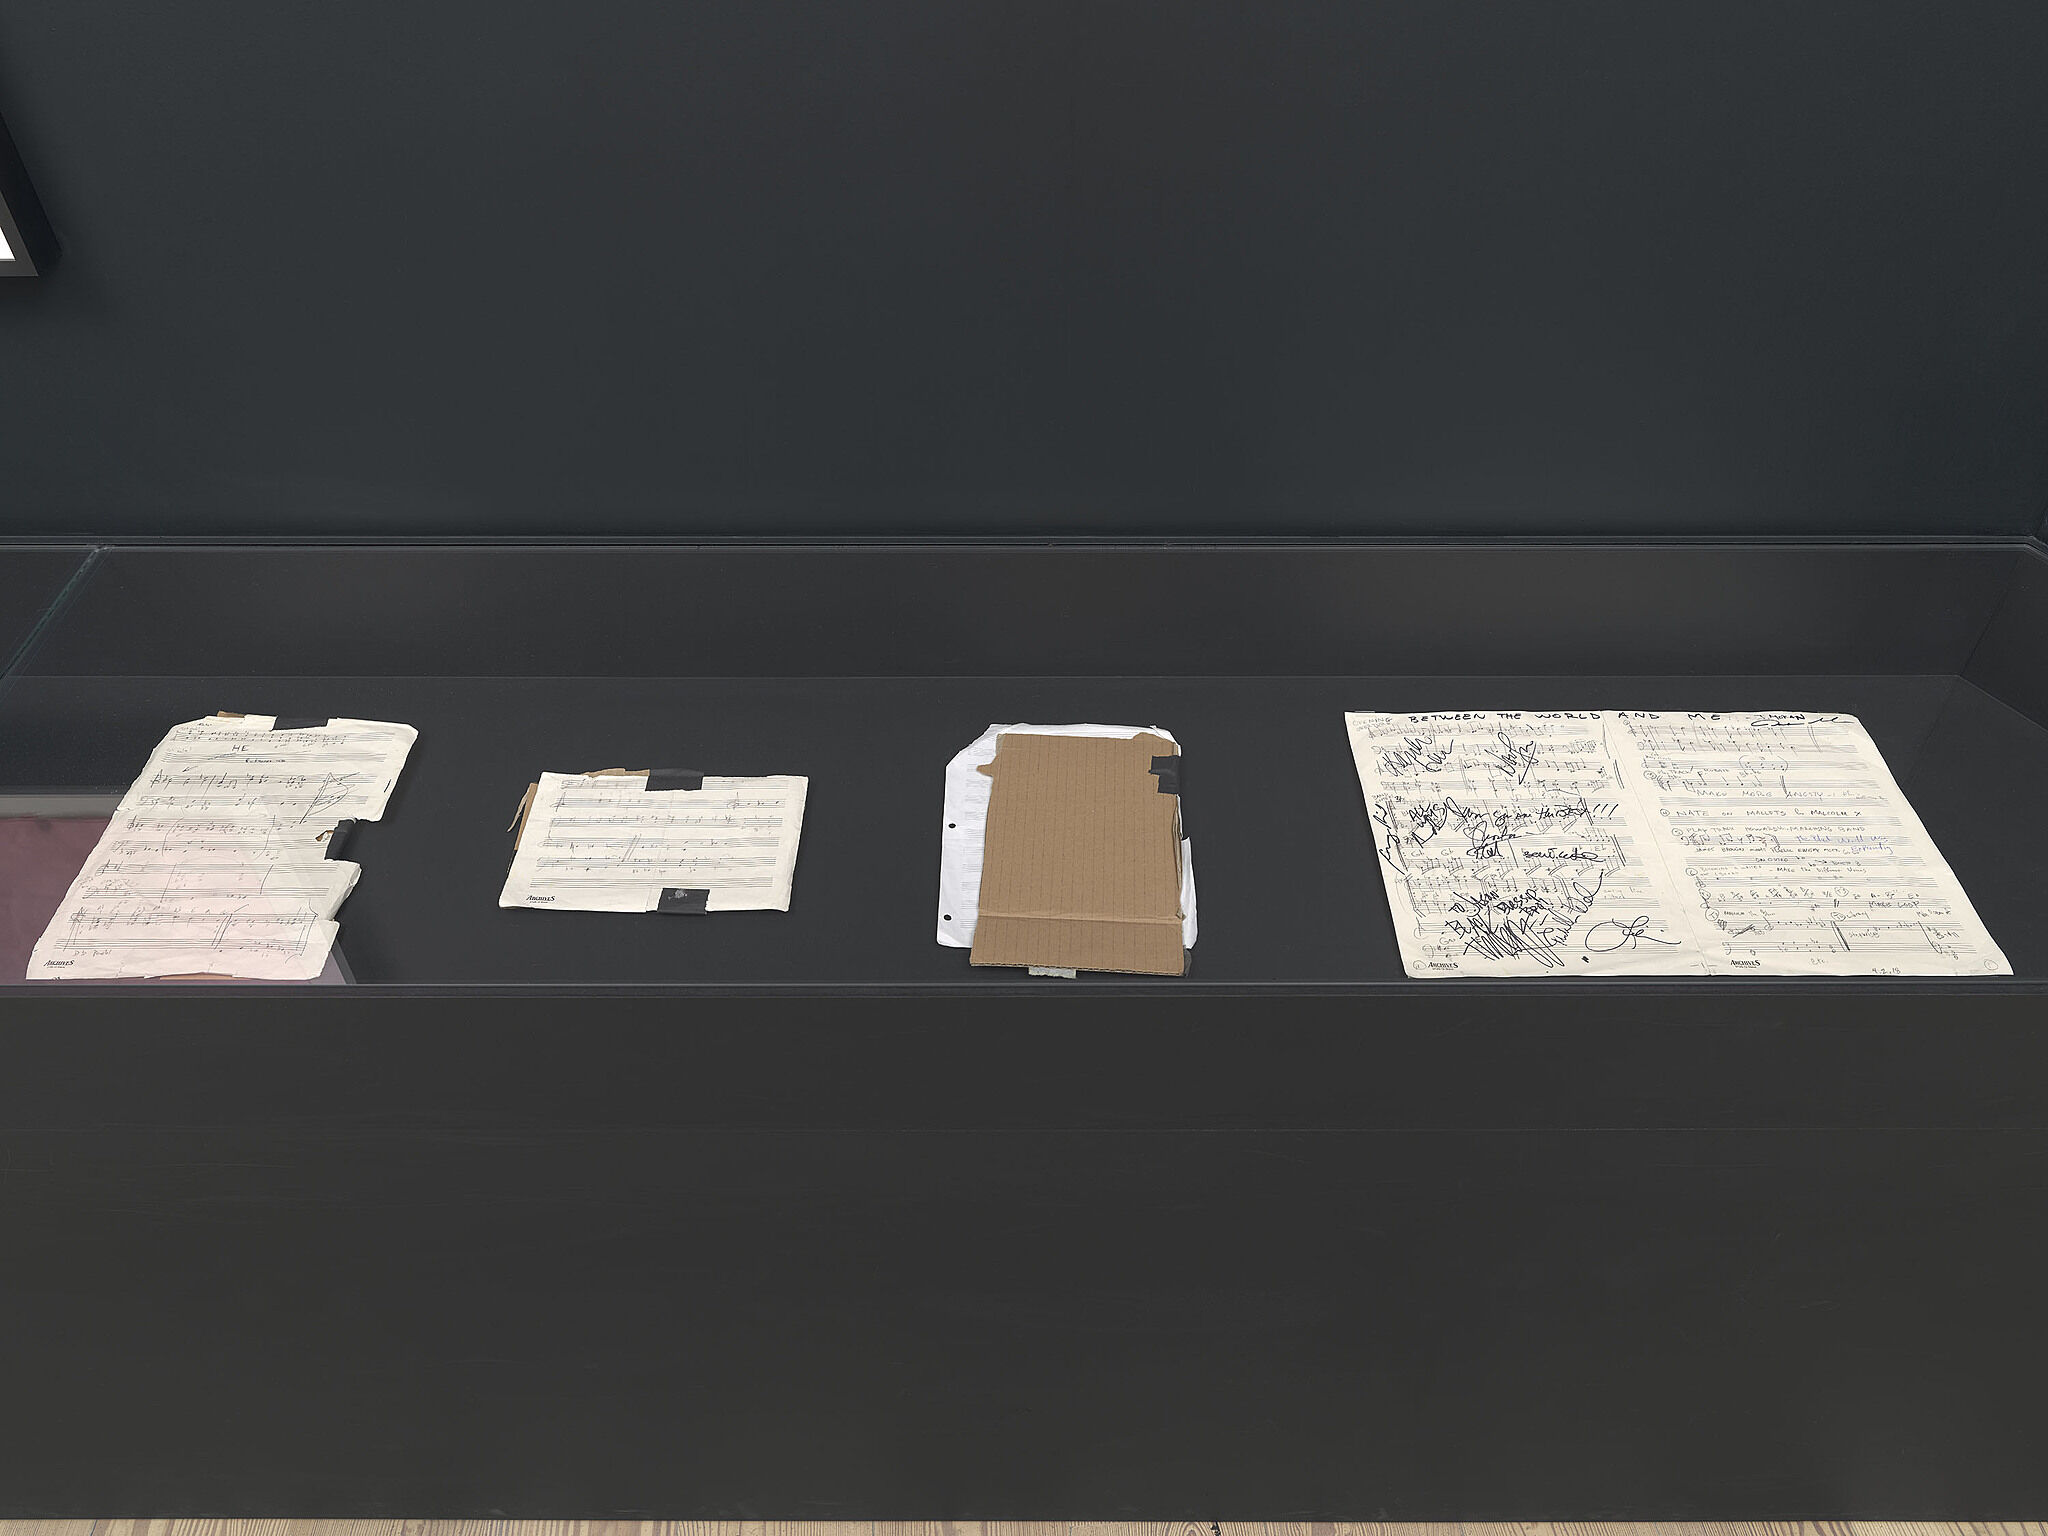 A glass case with various paper compositions